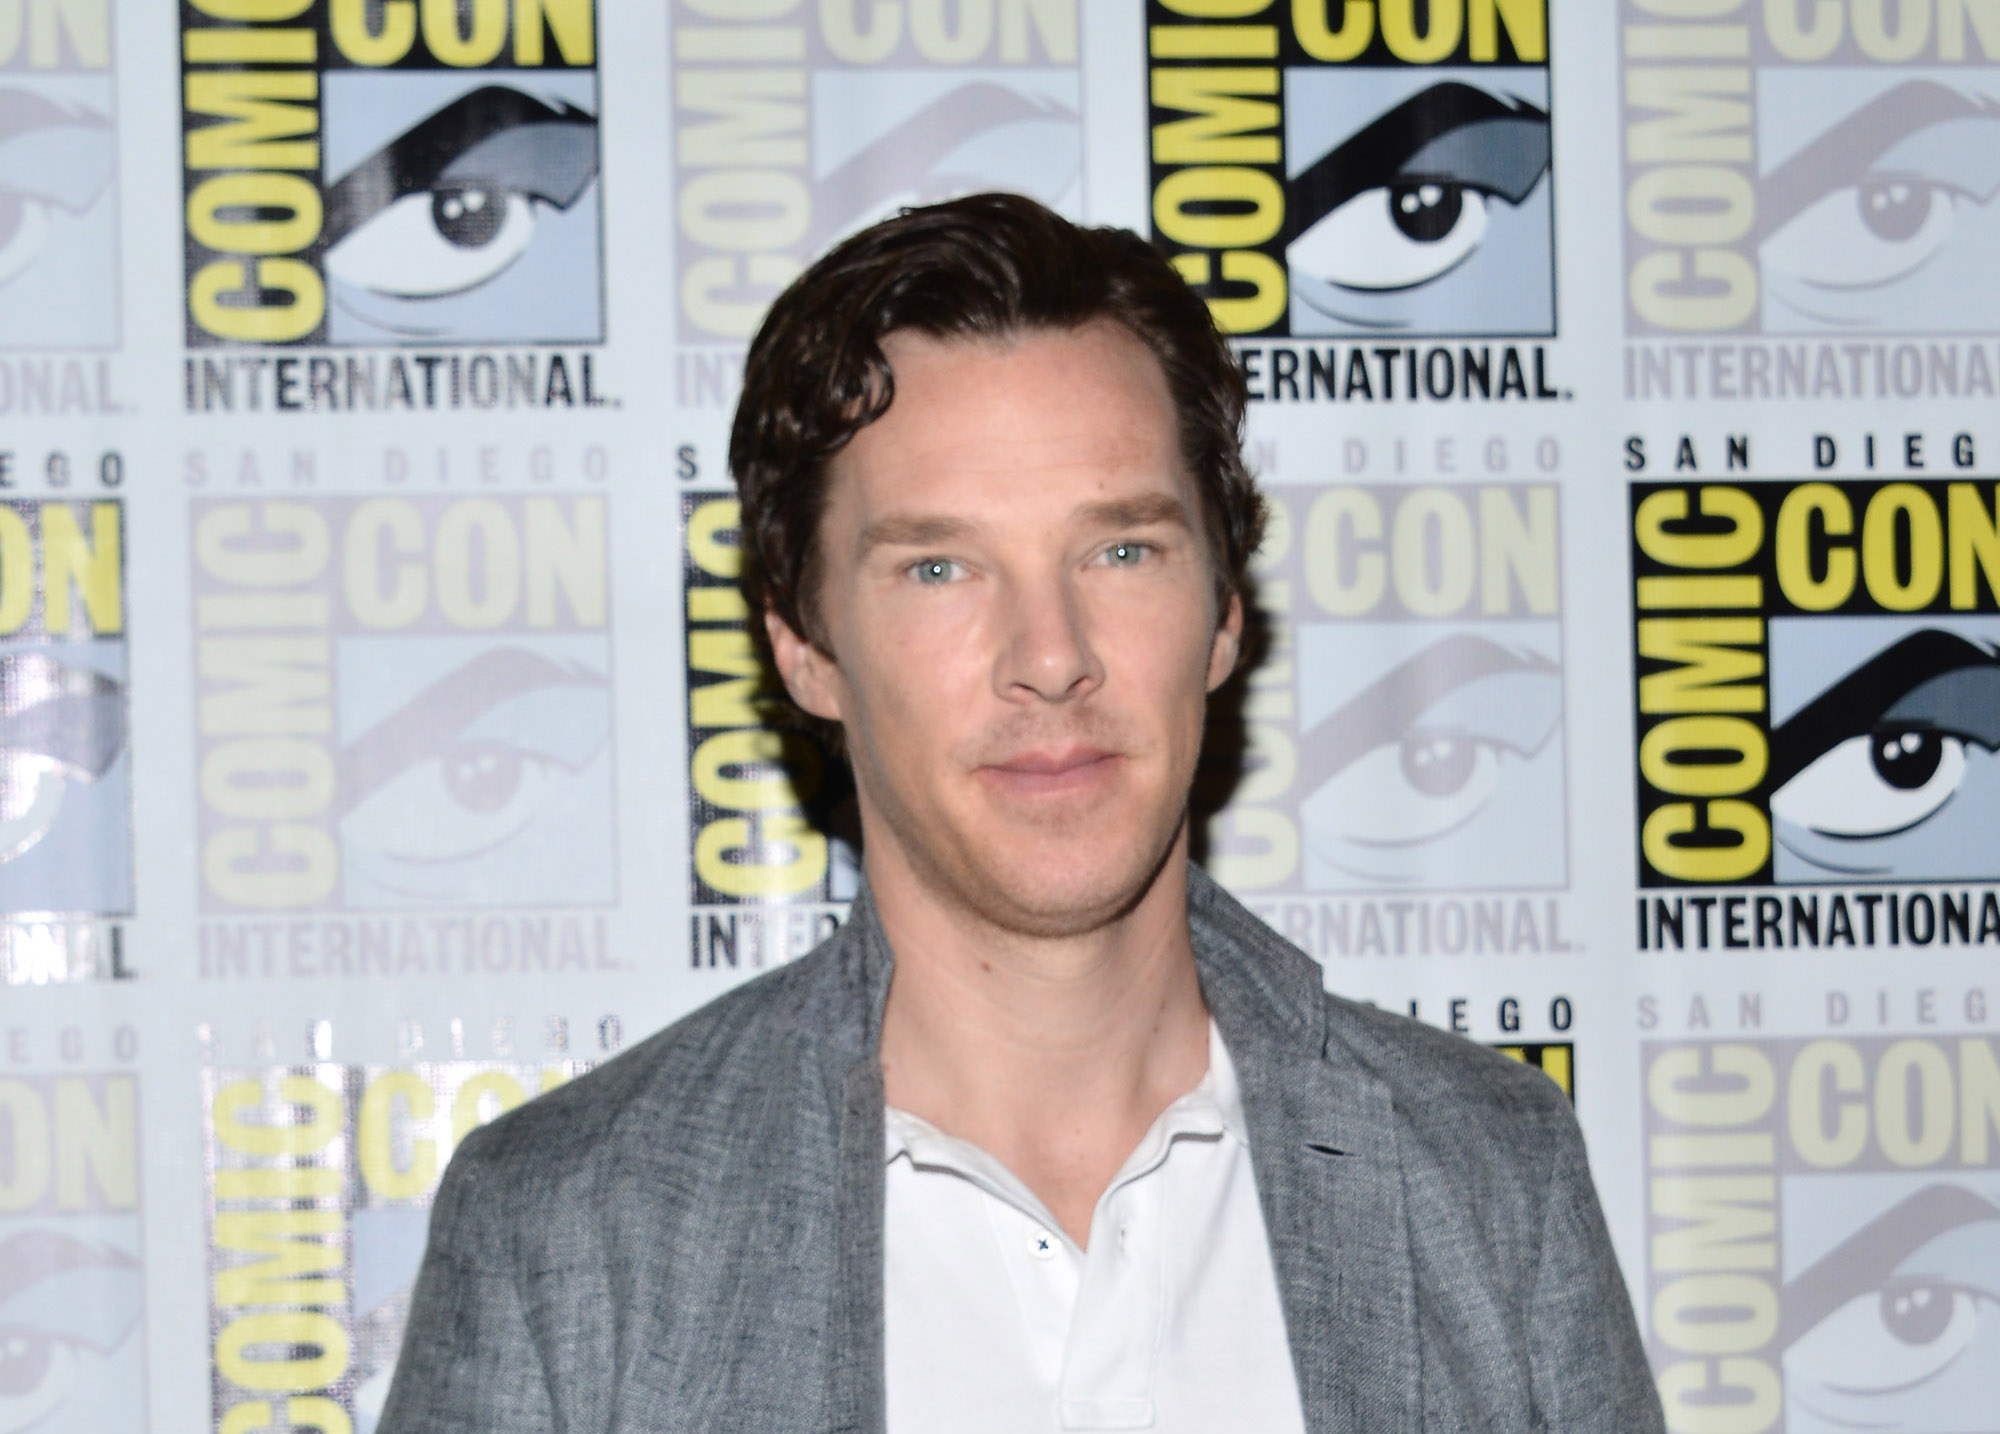 Benedict Cumberbatch attends the  Sherlock  press line at Comic-Con International 2016 - Day 4 on July 24, 2016 in San Diego, California.  (Photo by Araya Diaz/WireImage)